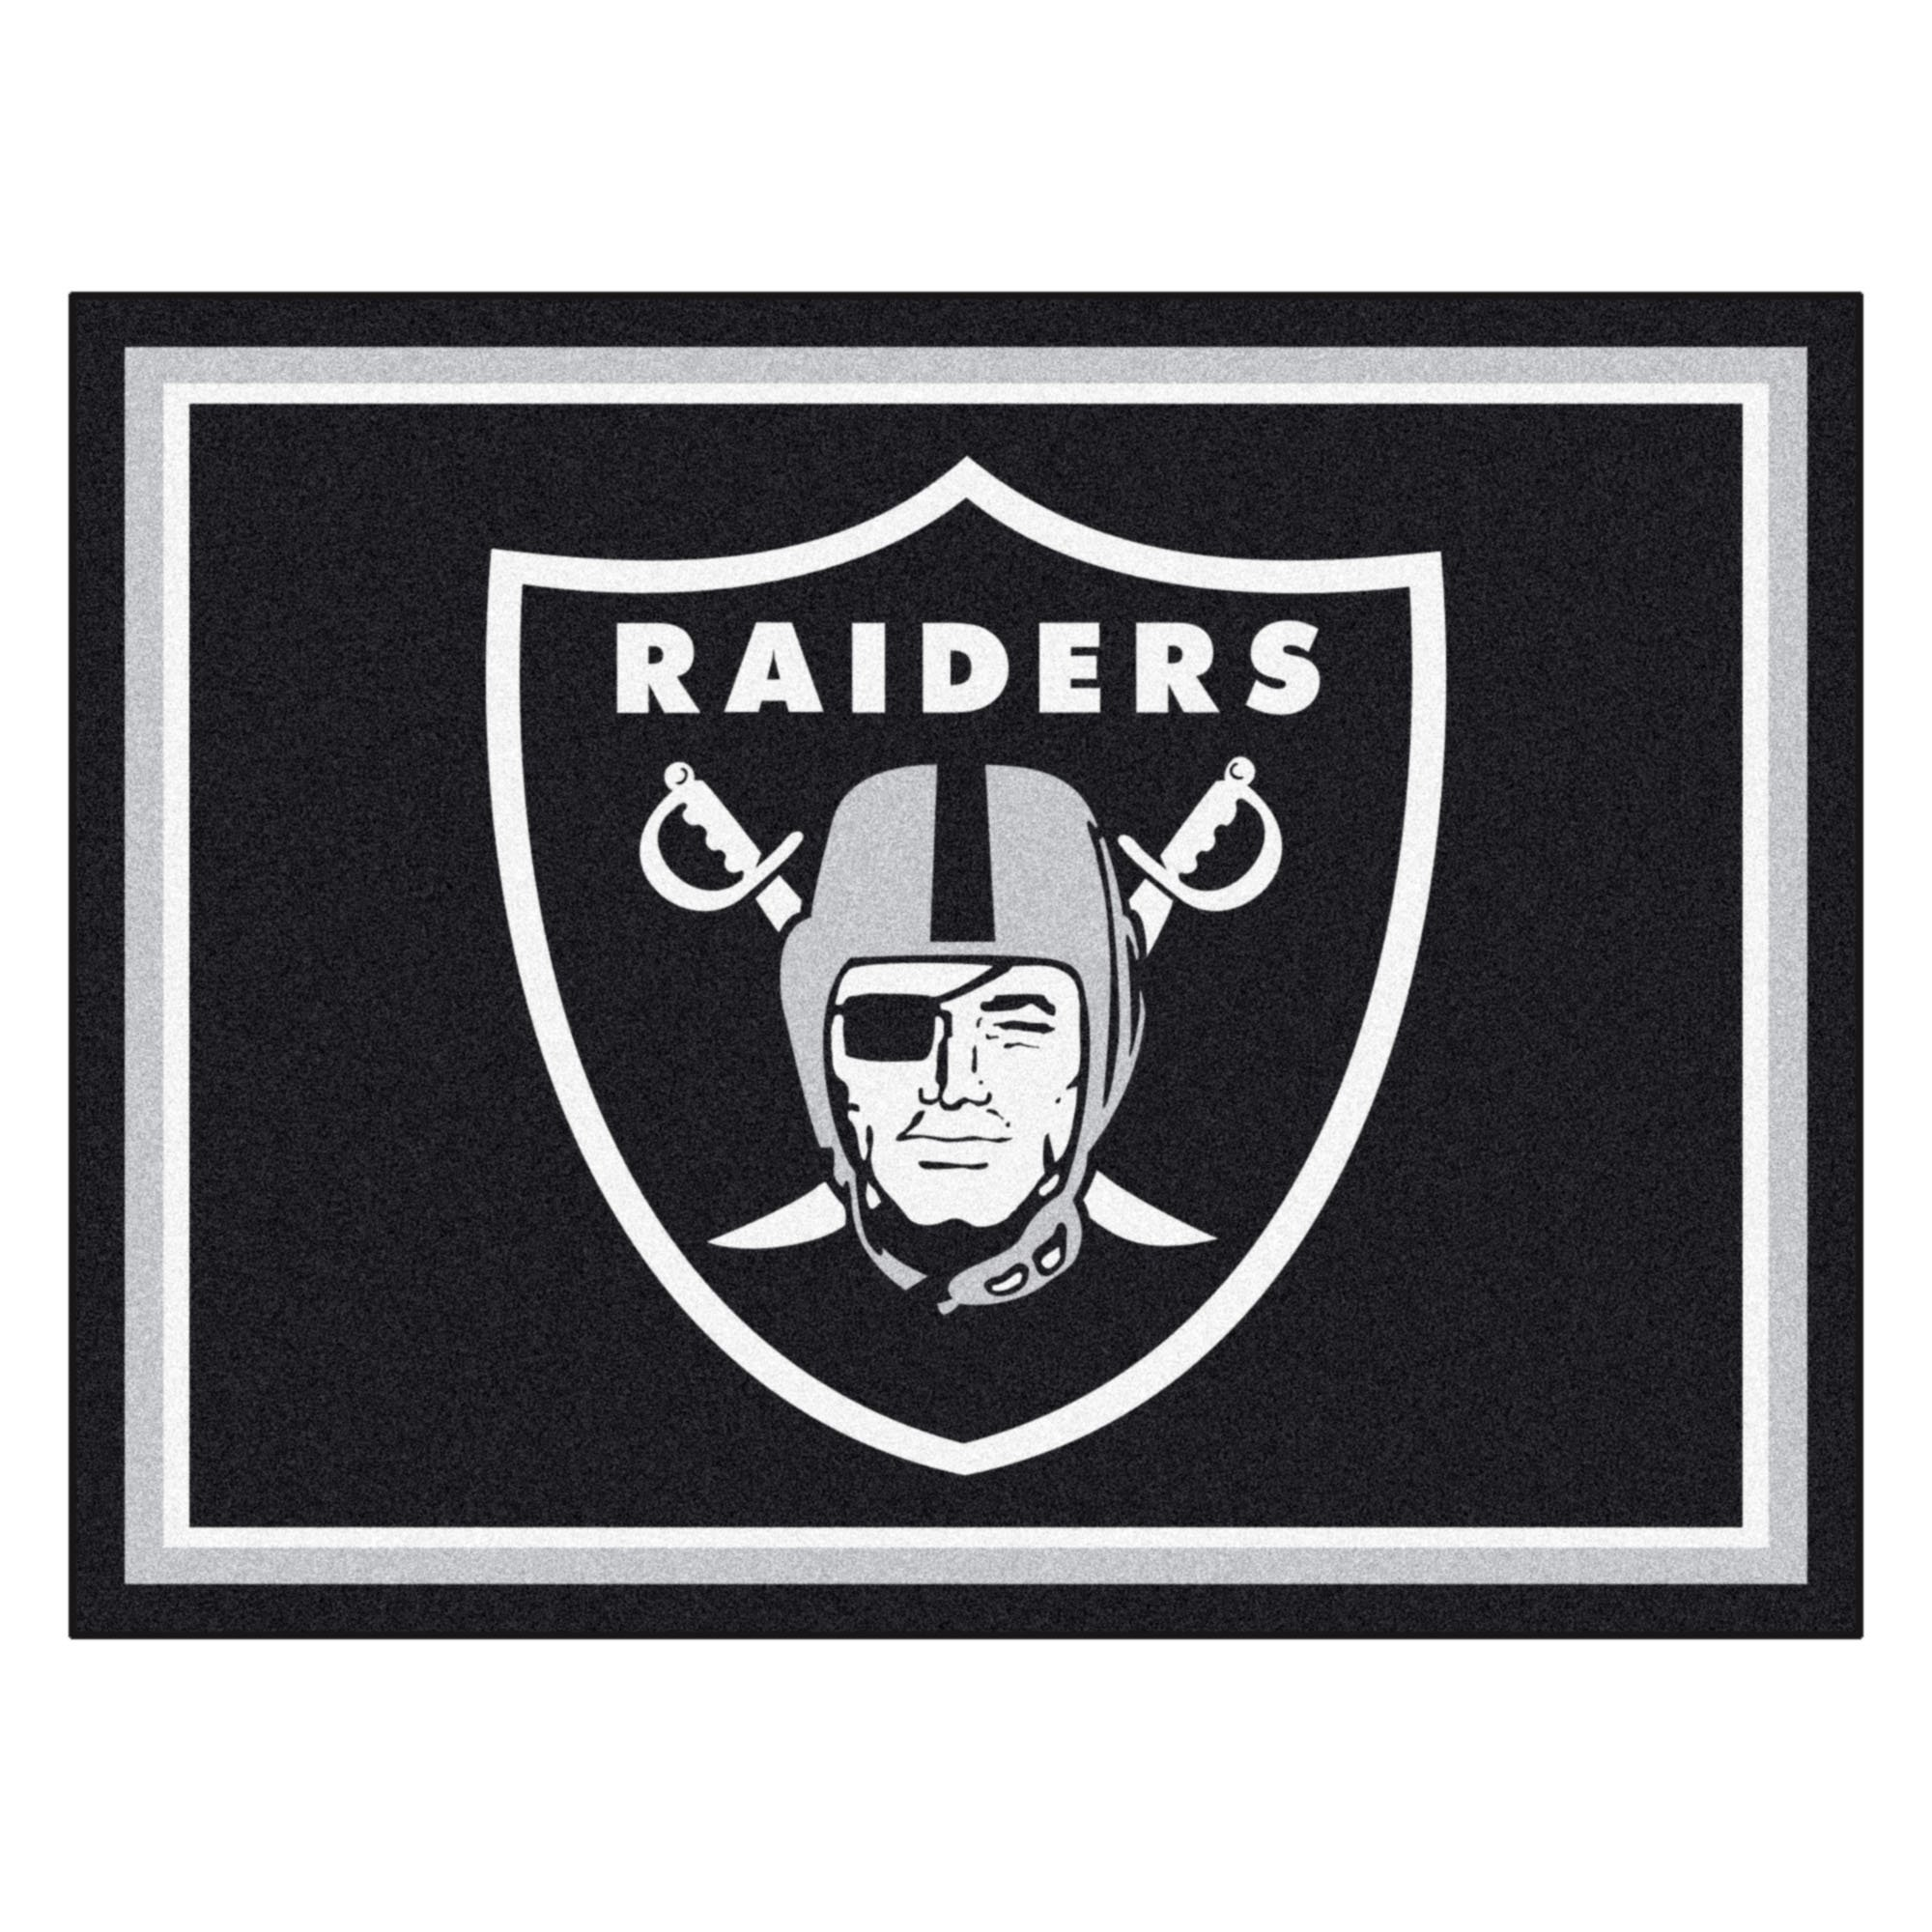 FANMATS 17493 NFL Oakland Raiders Rug by FANMATS (Image #1)